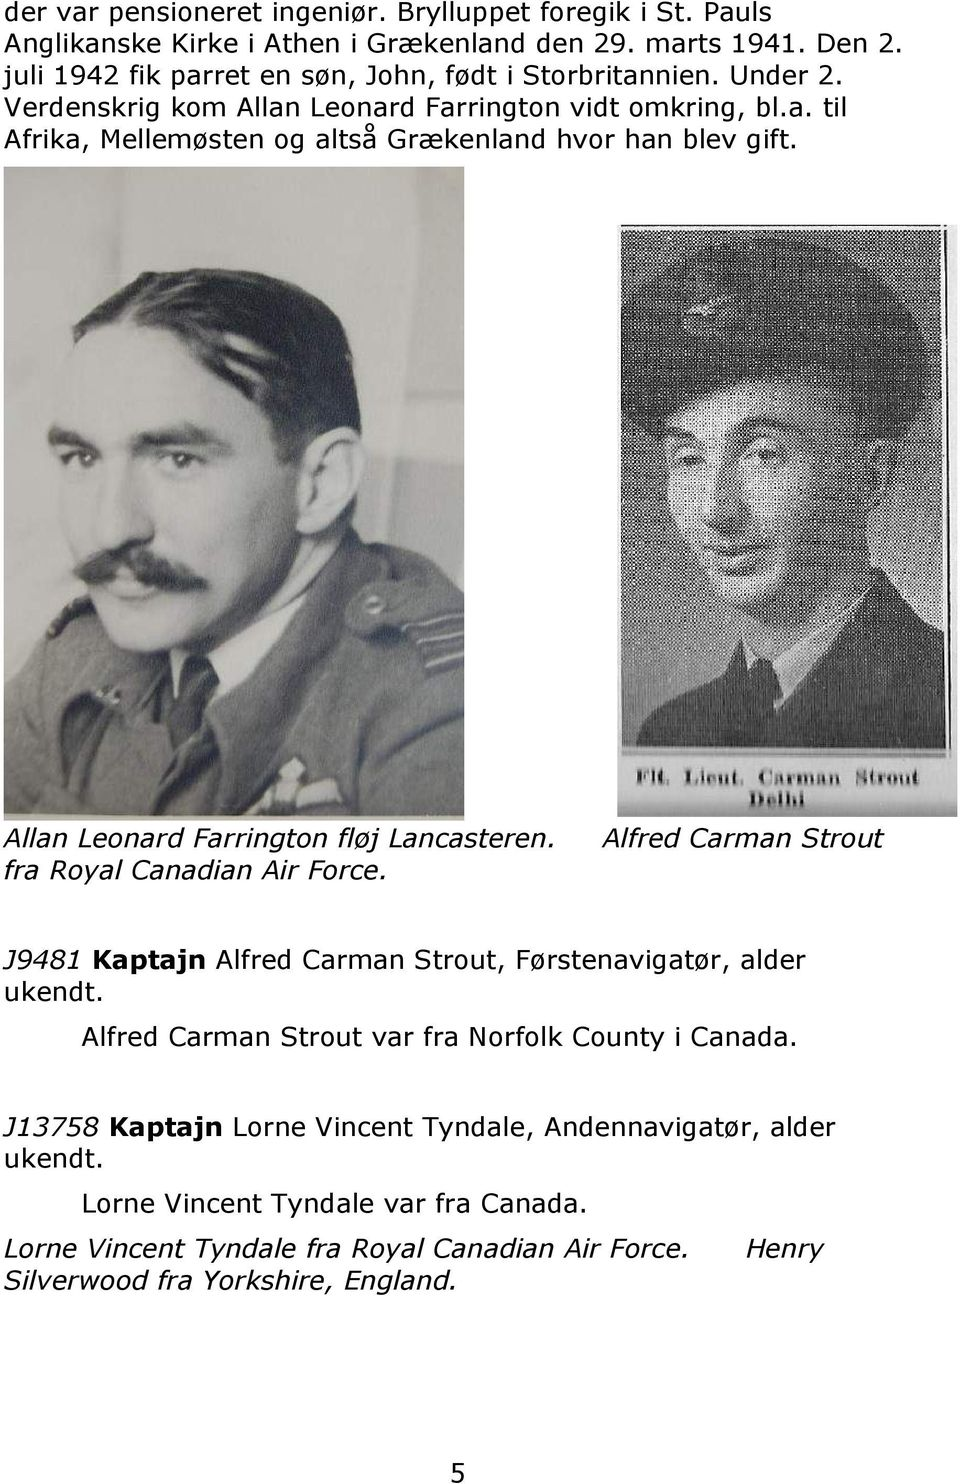 fra Royal Canadian Air Force. Alfred Carman Strout J9481 Kaptajn Alfred Carman Strout, Førstenavigatør, alder ukendt. Alfred Carman Strout var fra Norfolk County i Canada.